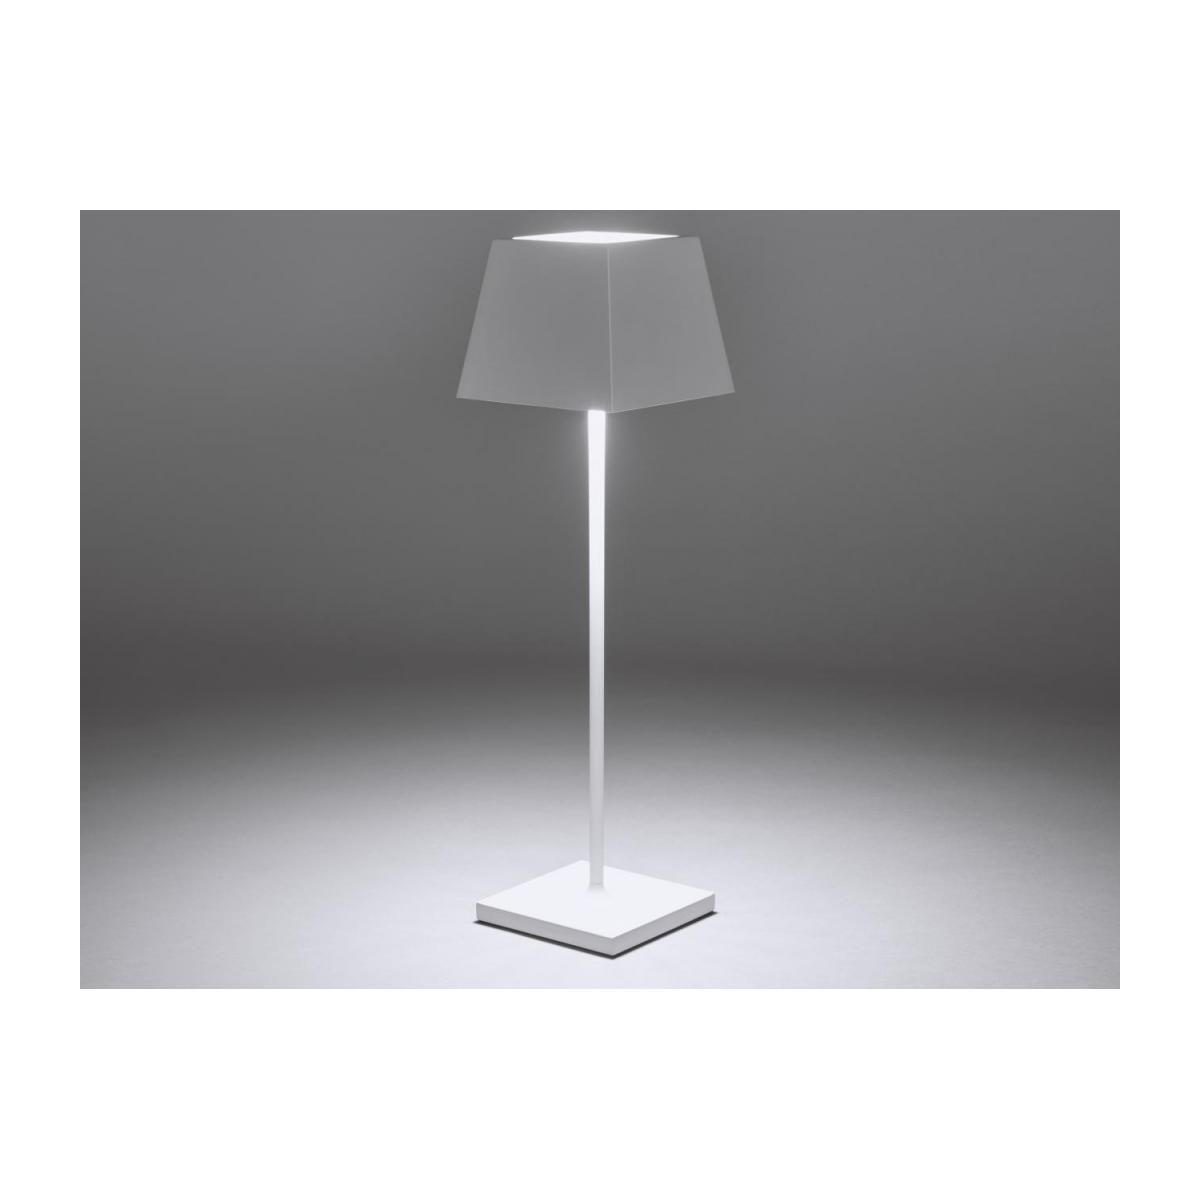 Lampe de table nomade à LED IP54 en aluminium - Blanc n°2